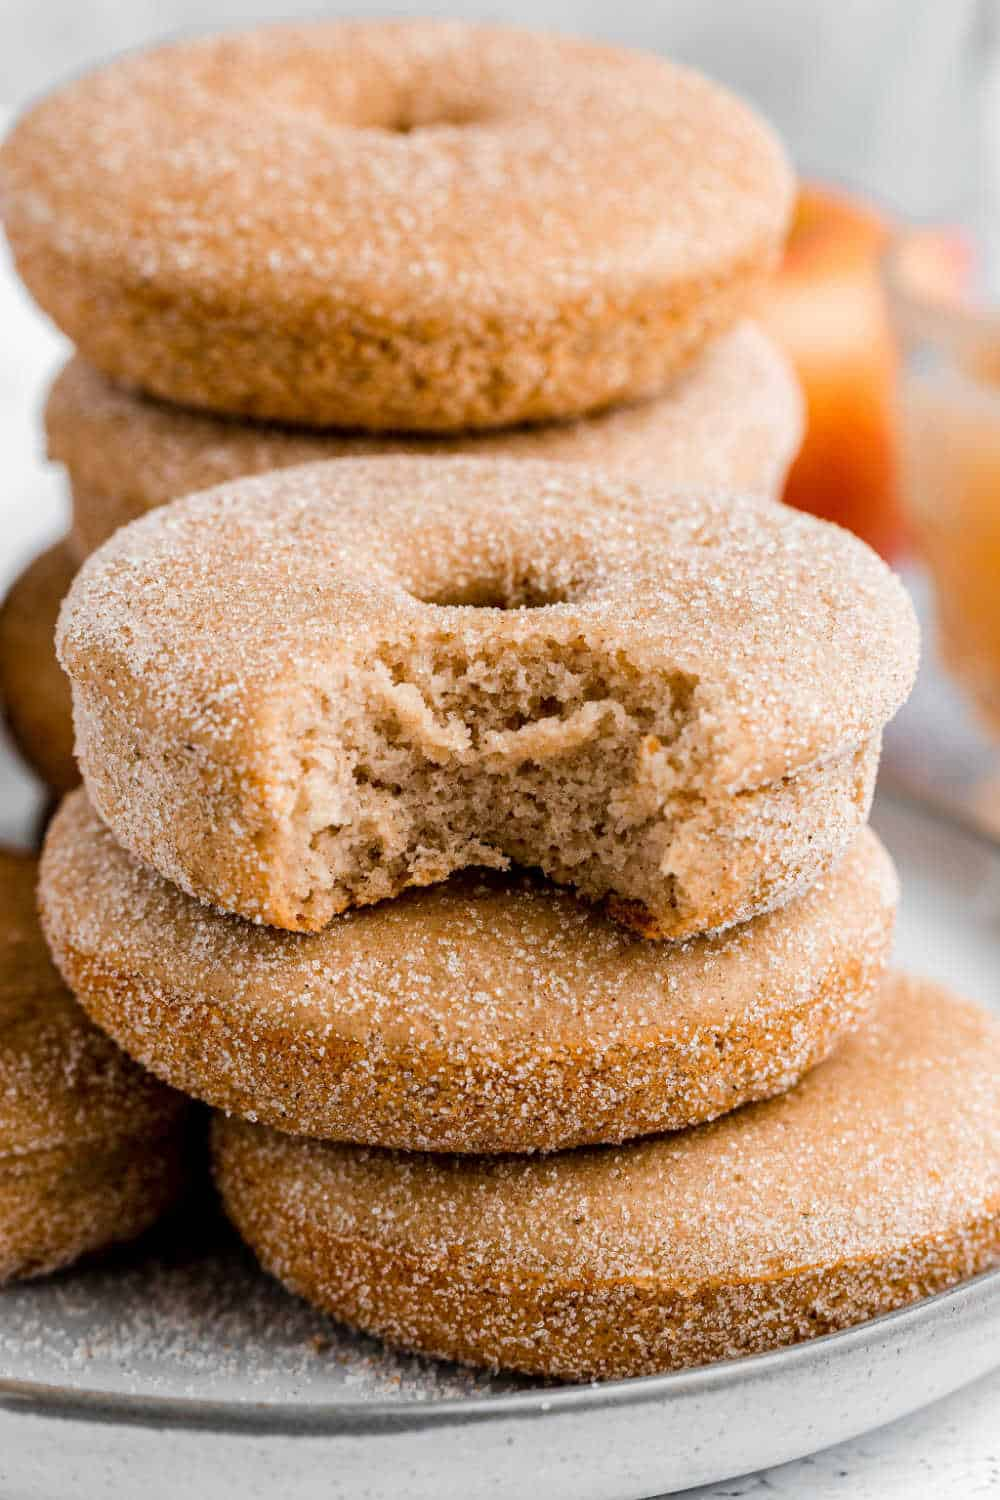 baked apple cider donuts stacked on a plate with a bite out of one